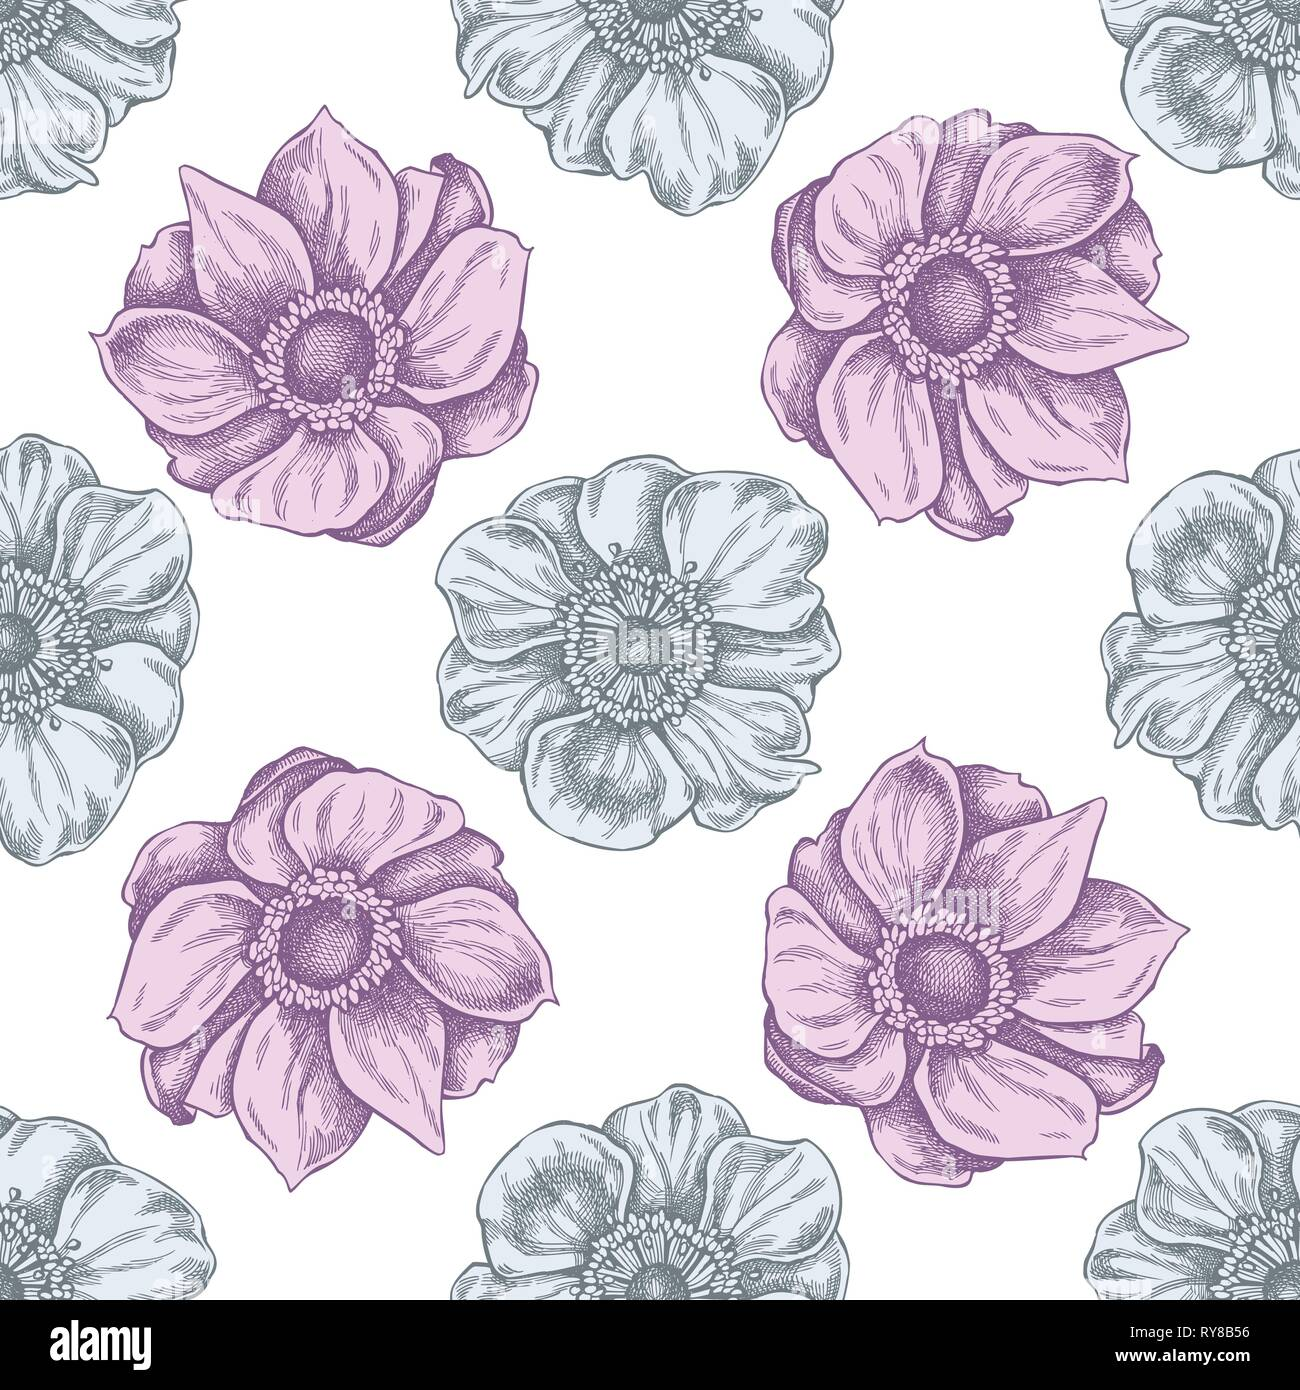 Seamless pattern with hand drawn pastel anemone - Stock Vector